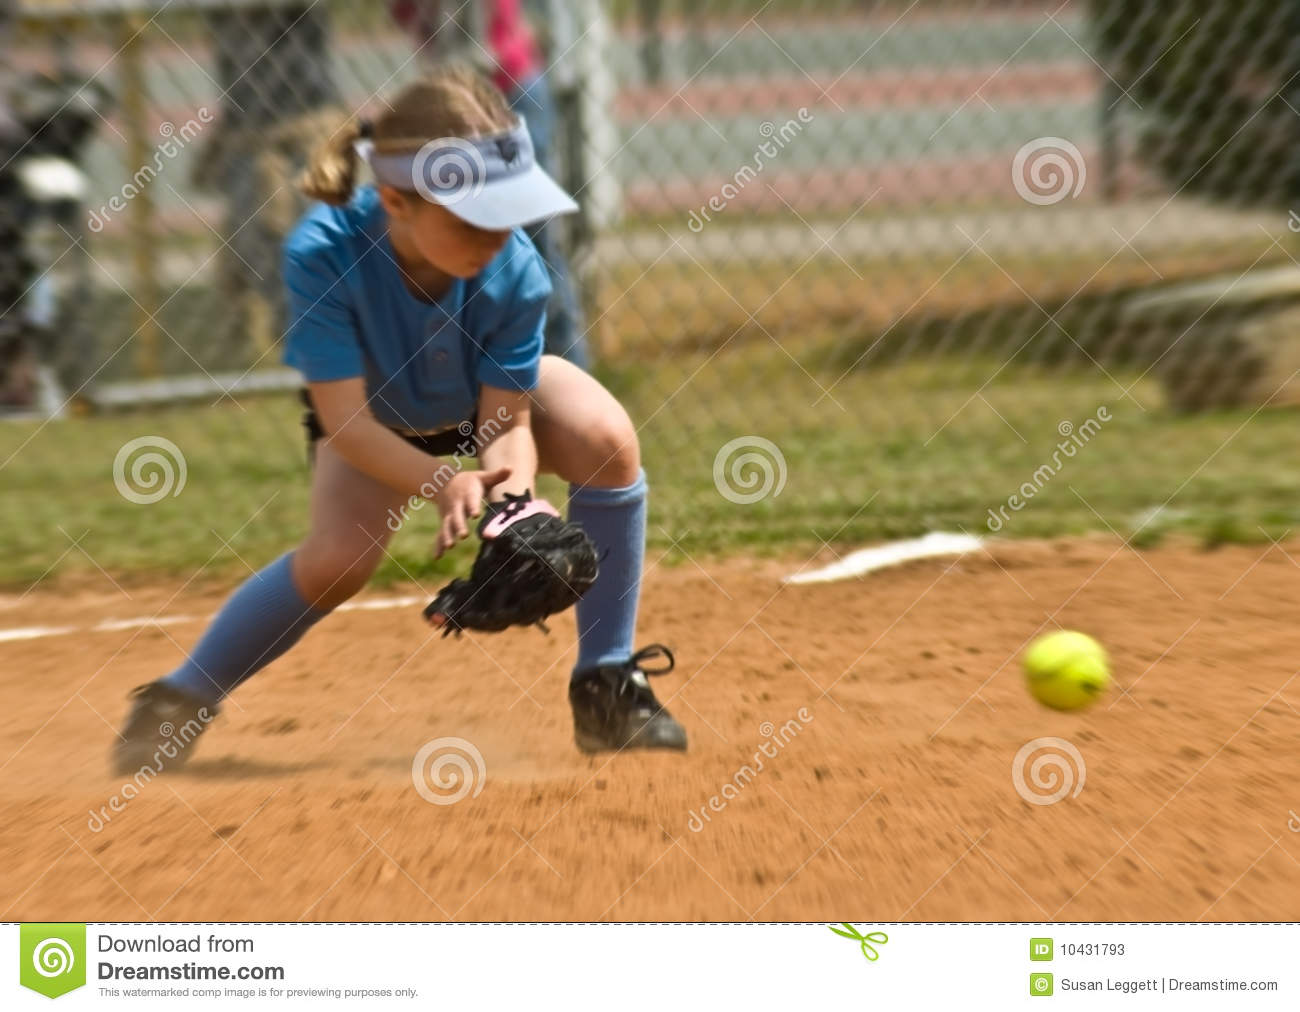 Le base-ball de la fille